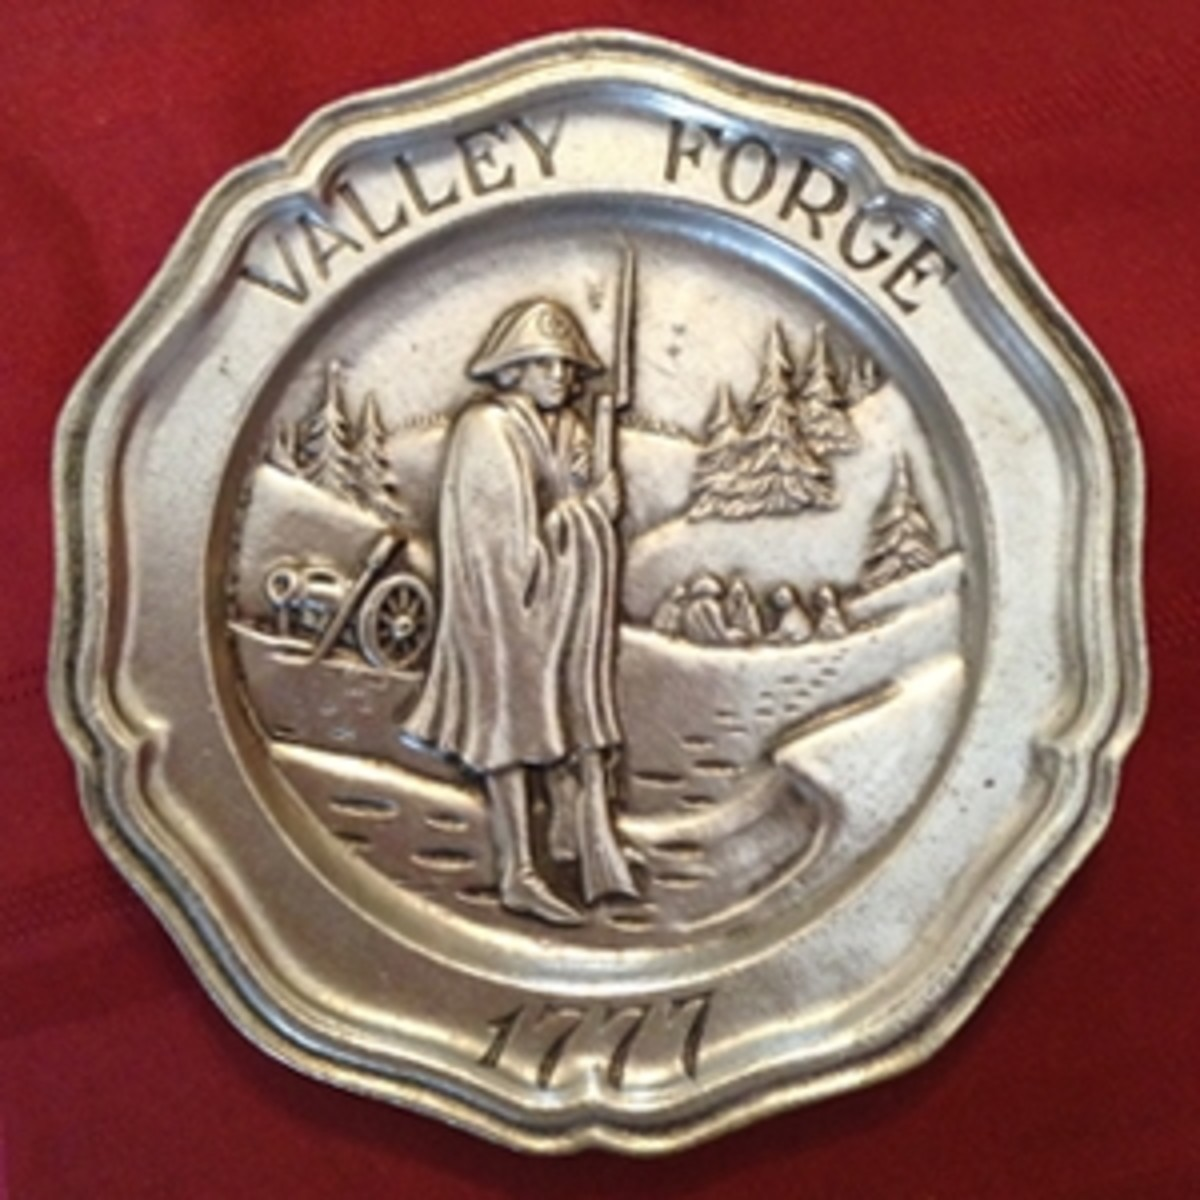 Valley Forge Pewter Plate